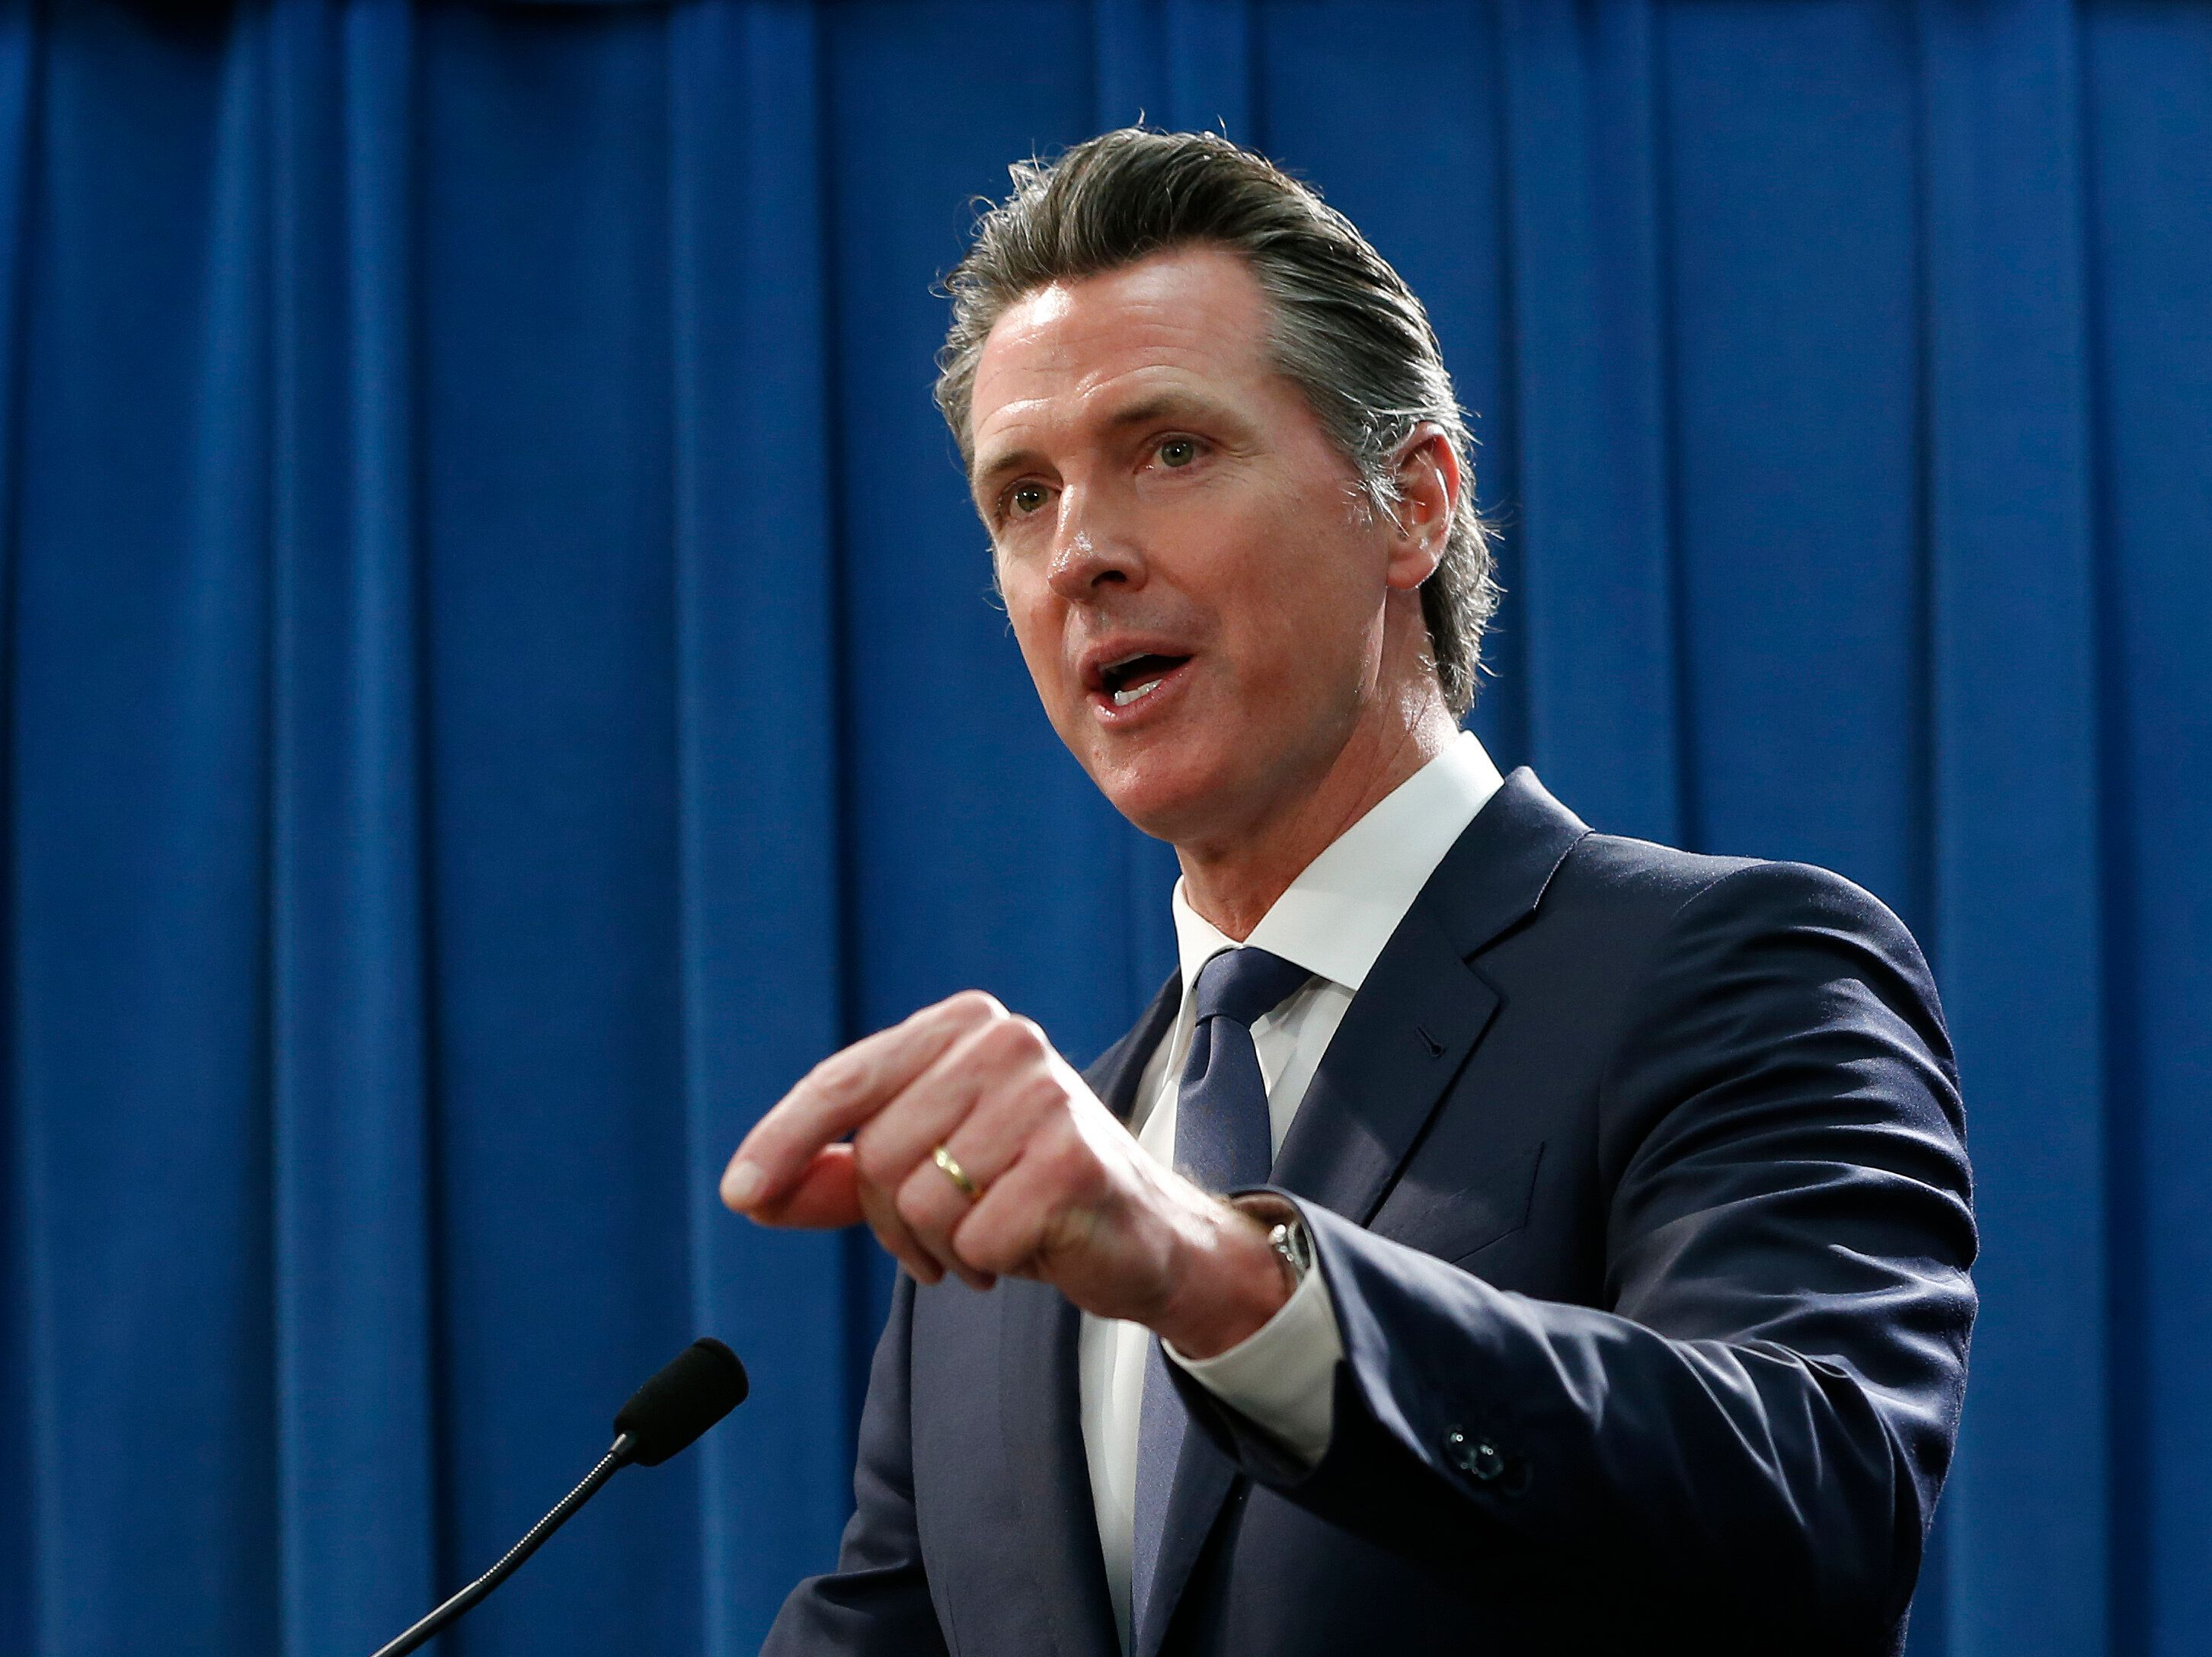 Gavin Newsom Proposes More Security Funds For Religious Groups After Synagogue